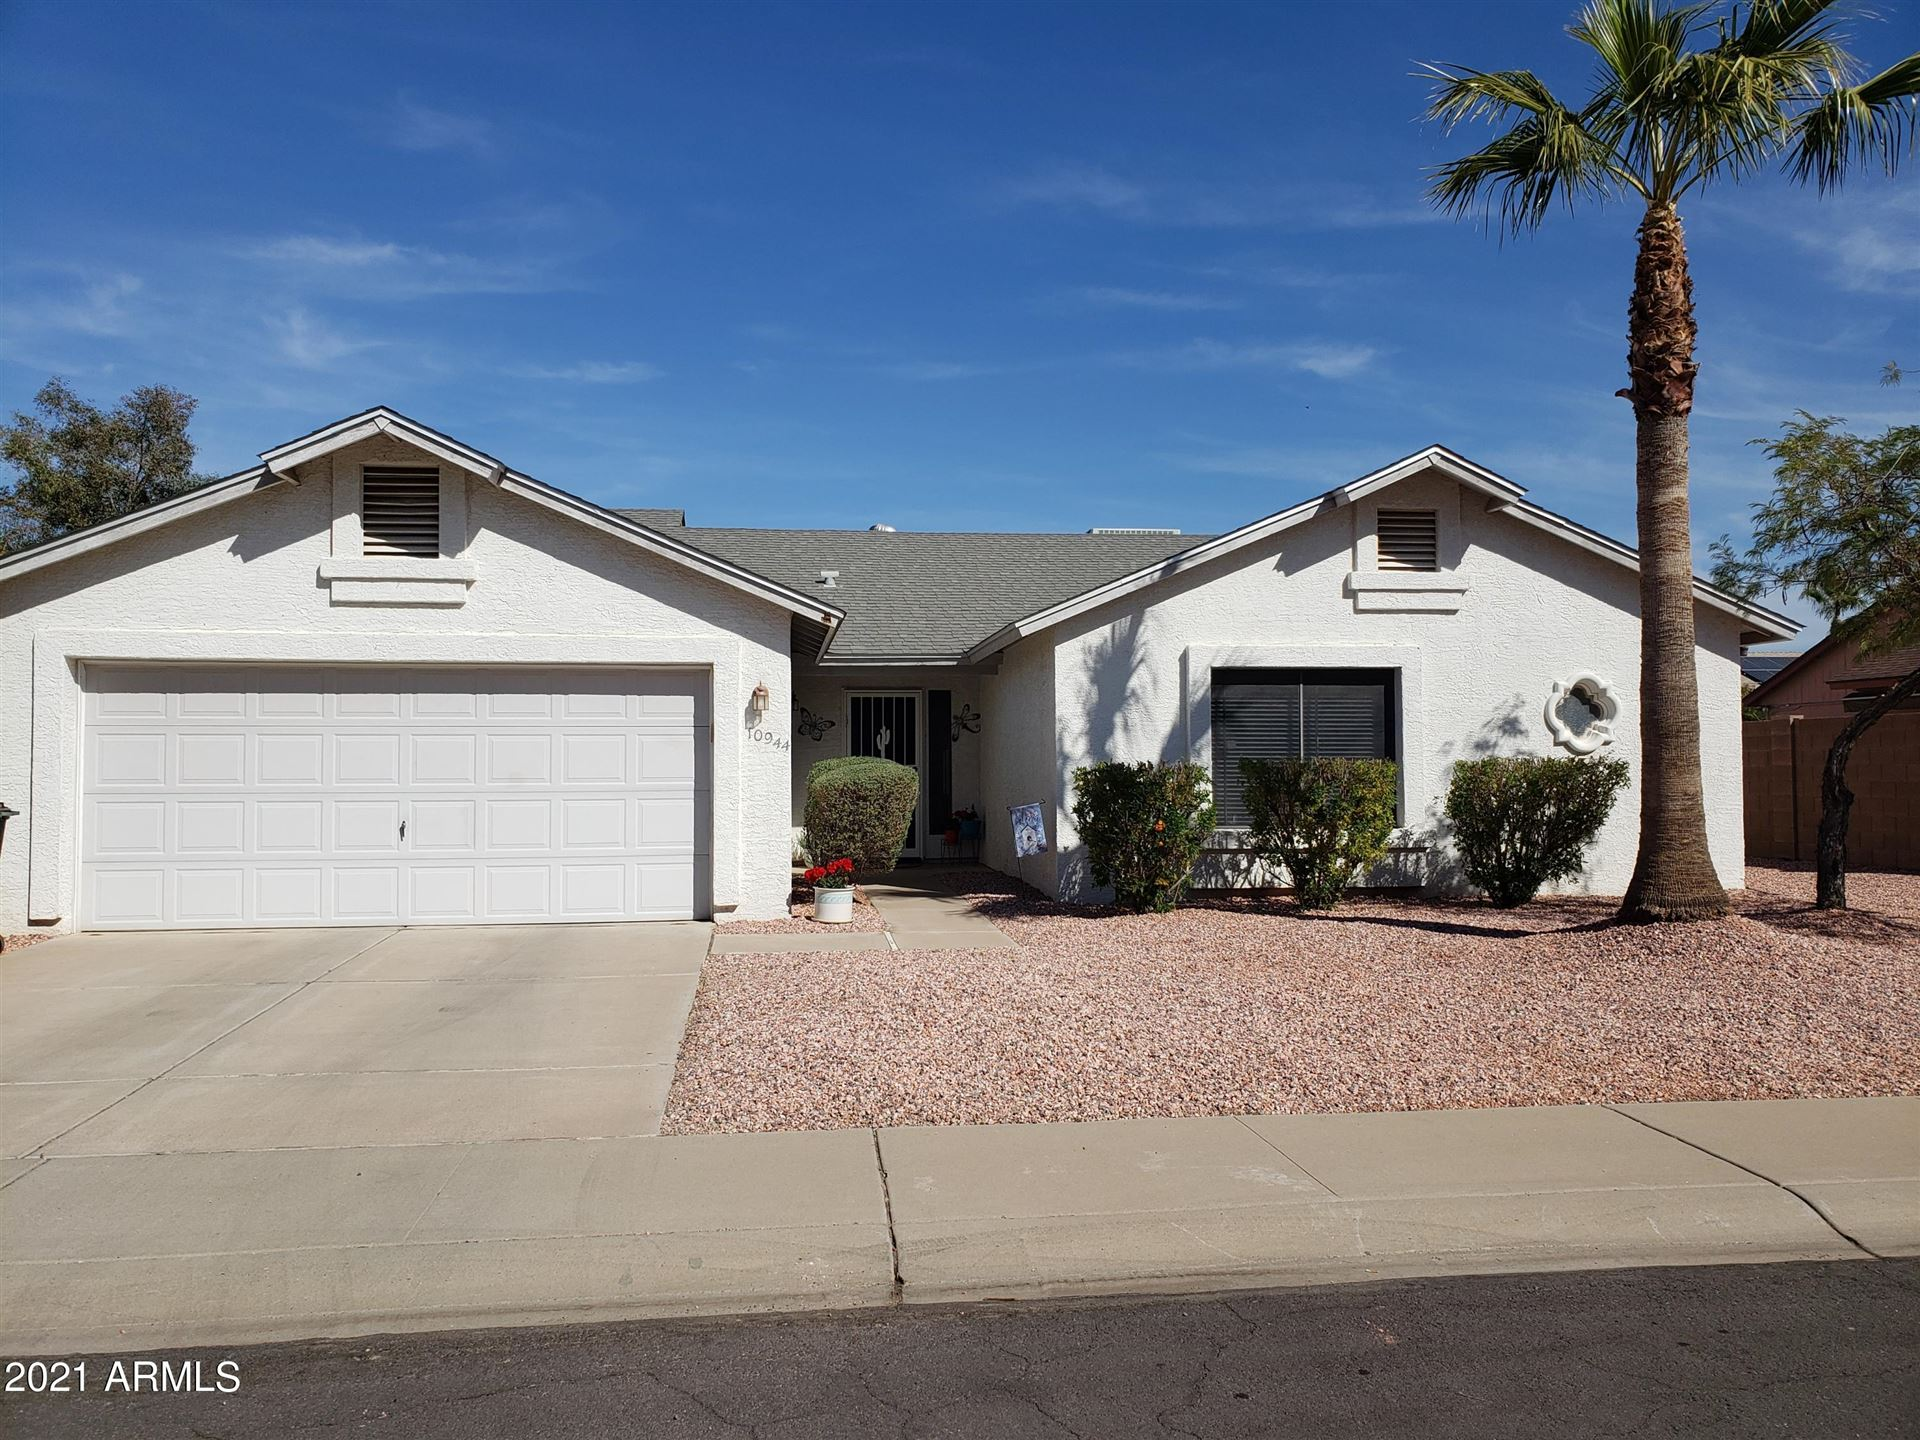 Photo of 10944 W Lawrence Lane, Peoria, AZ 85345 (MLS # 6198876)